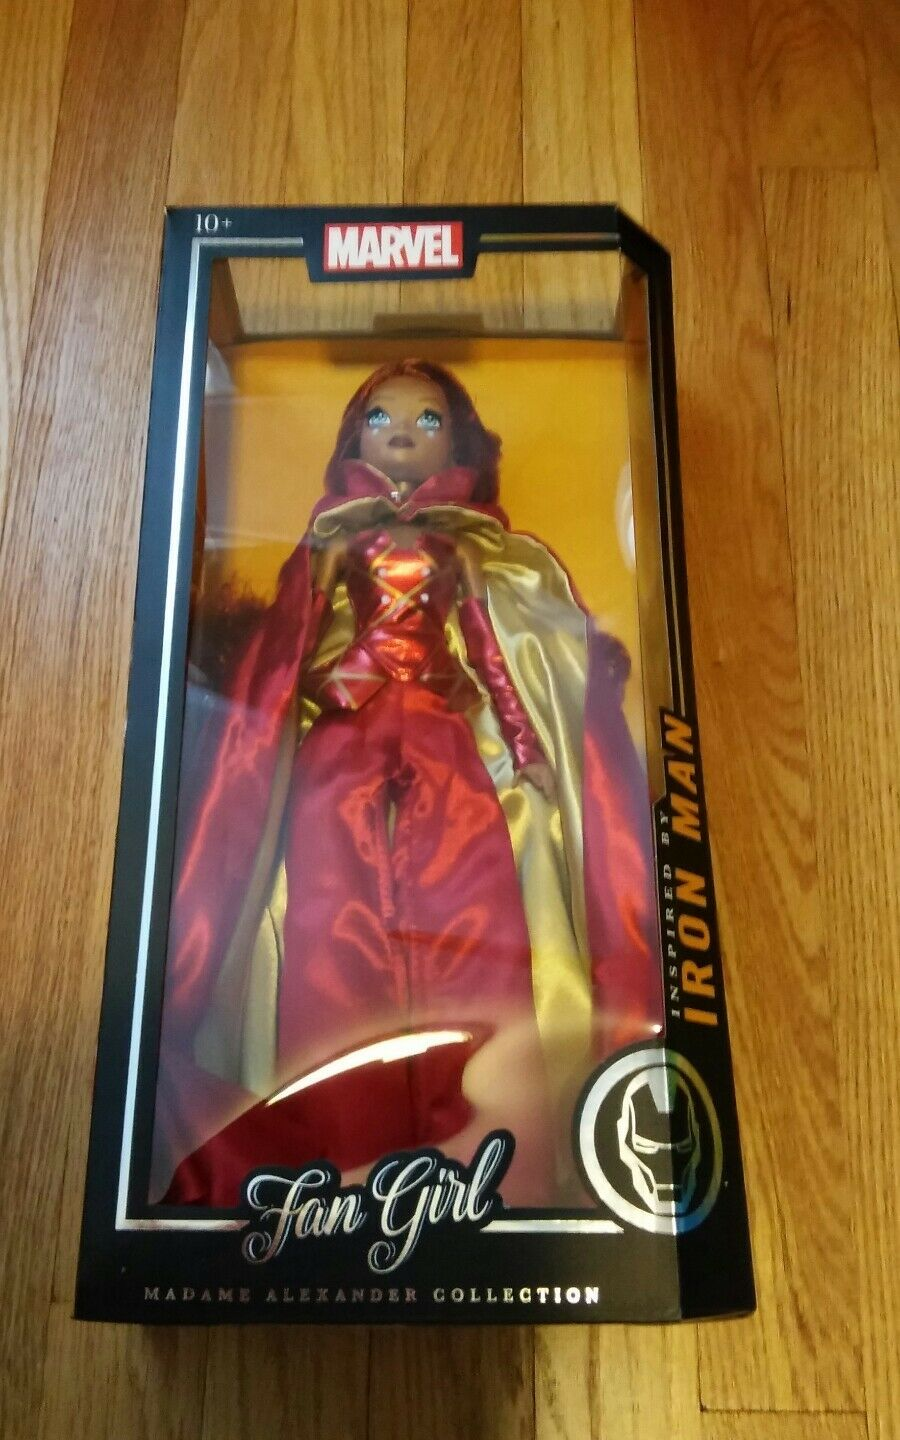 Marvel Fan Girl Iron Man inspired Madame Alexander doll 13.5 inch NiB